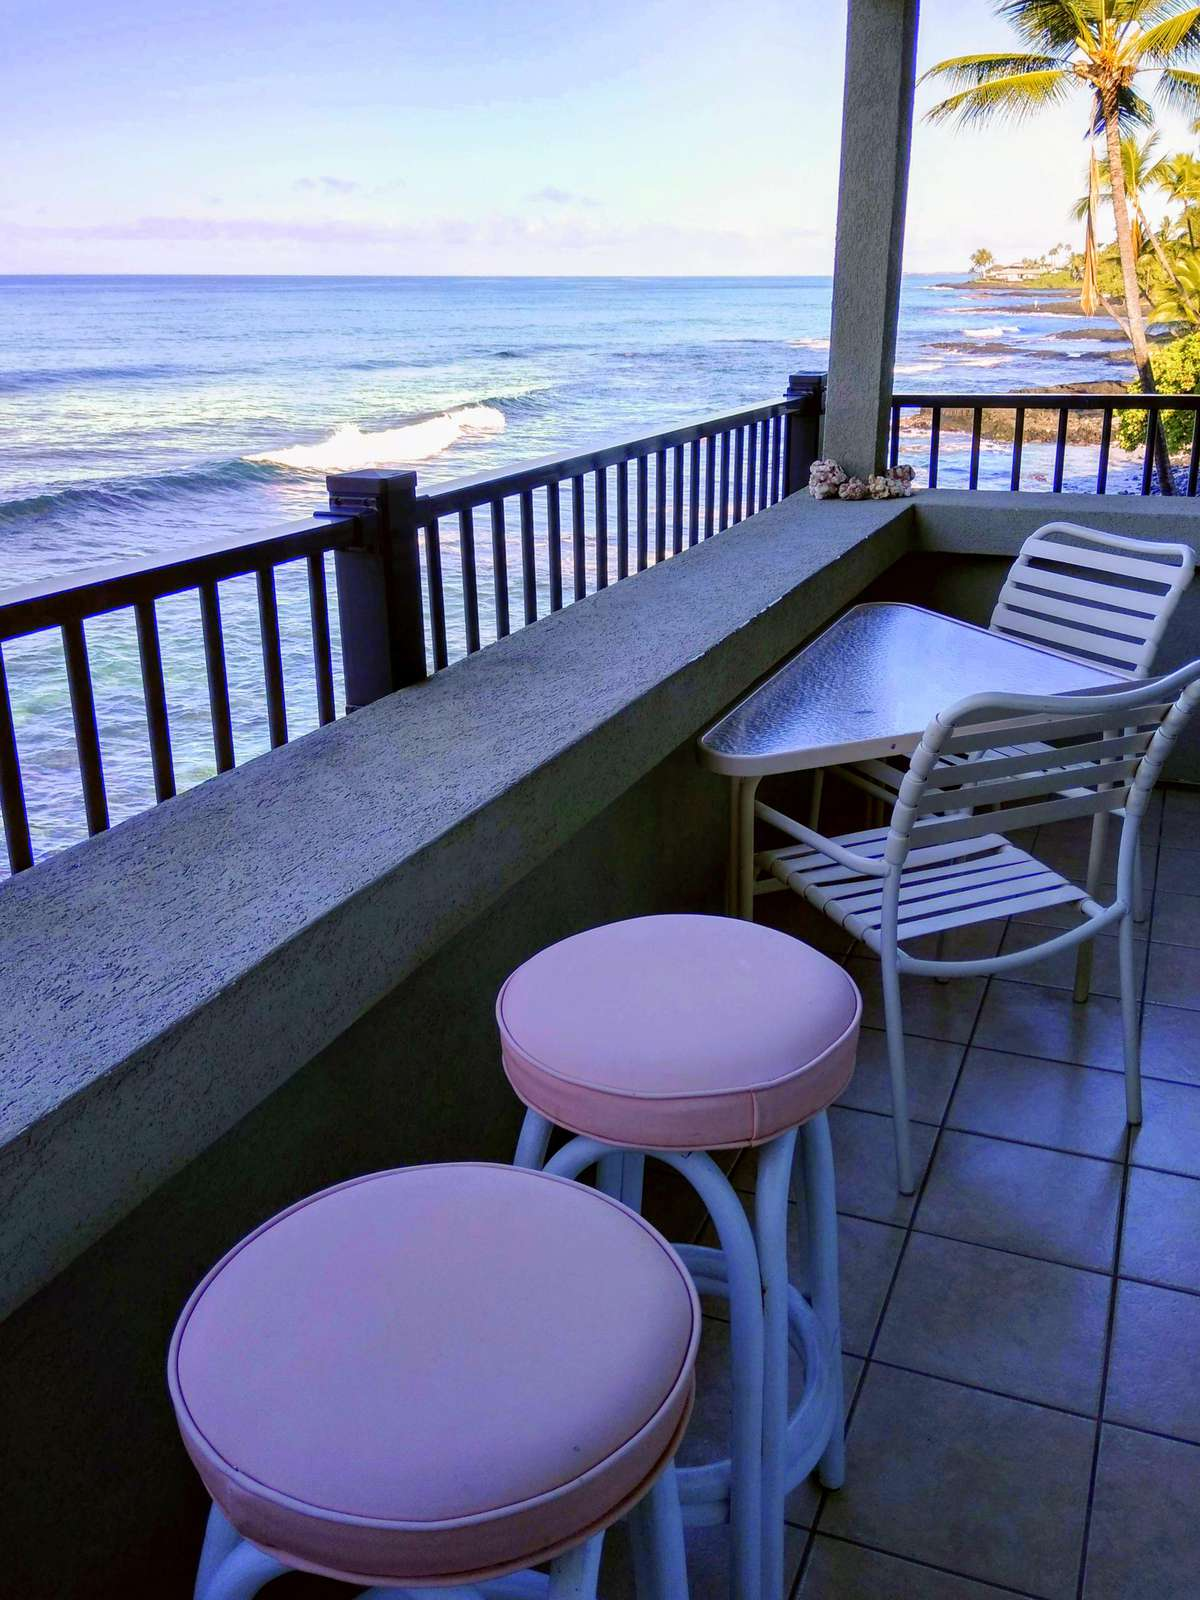 Enjoy your morning coffee overlooking the ocean.